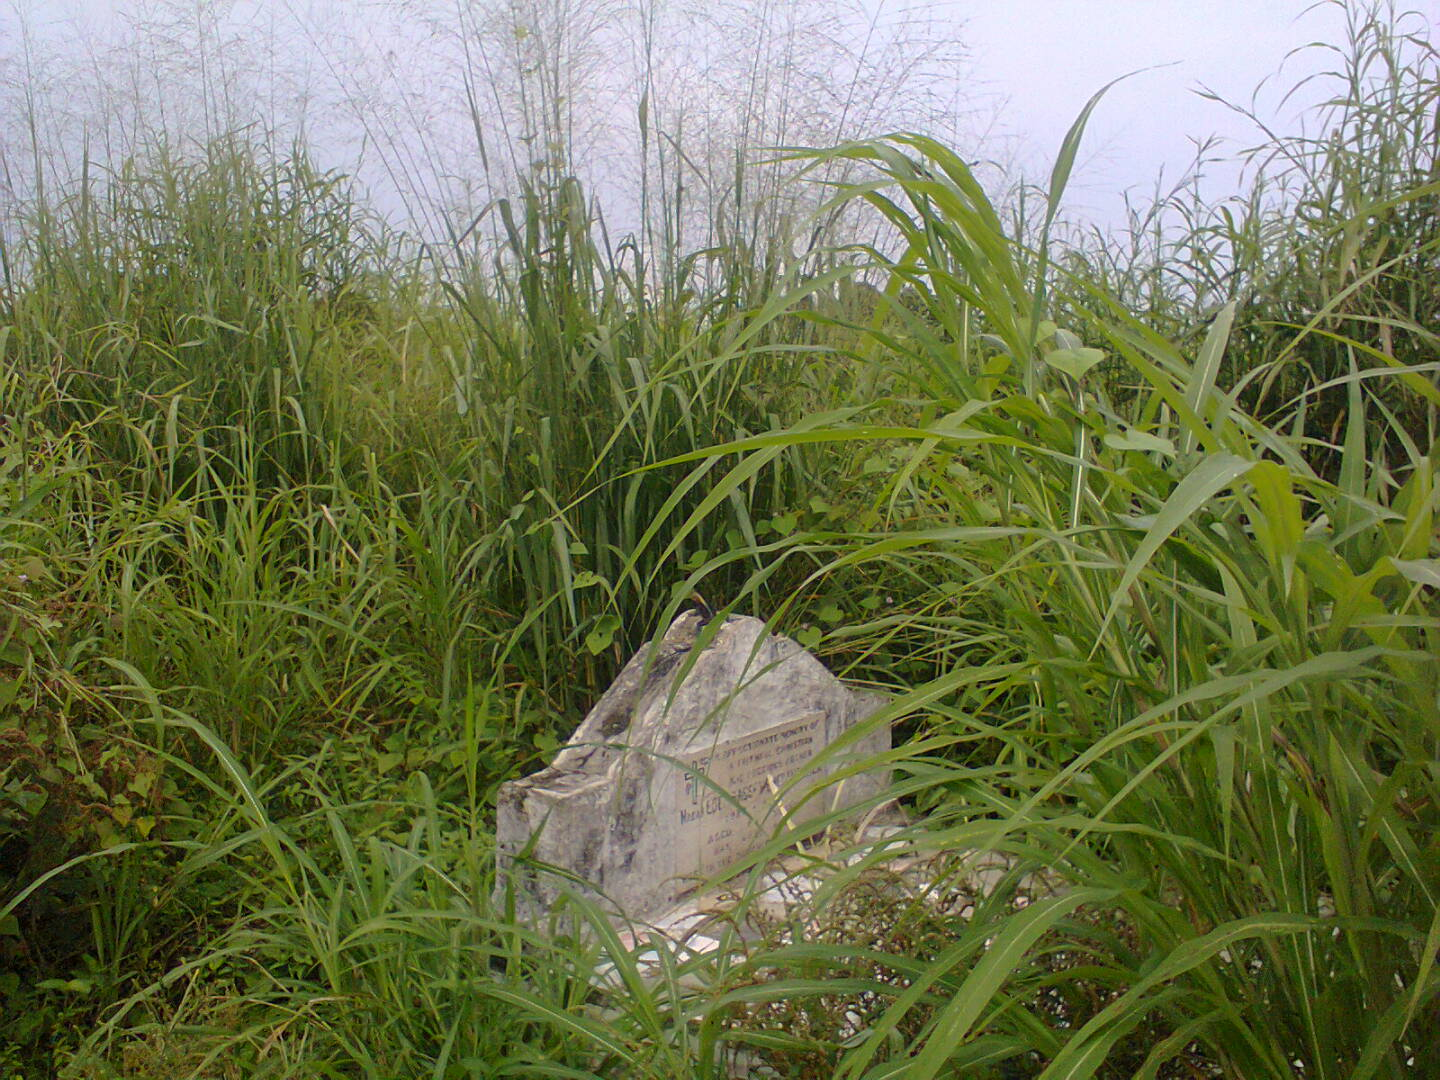 Nigeria's Famous Activist, Margaret Ekpo's Resting Place, Over Grown With Weeds